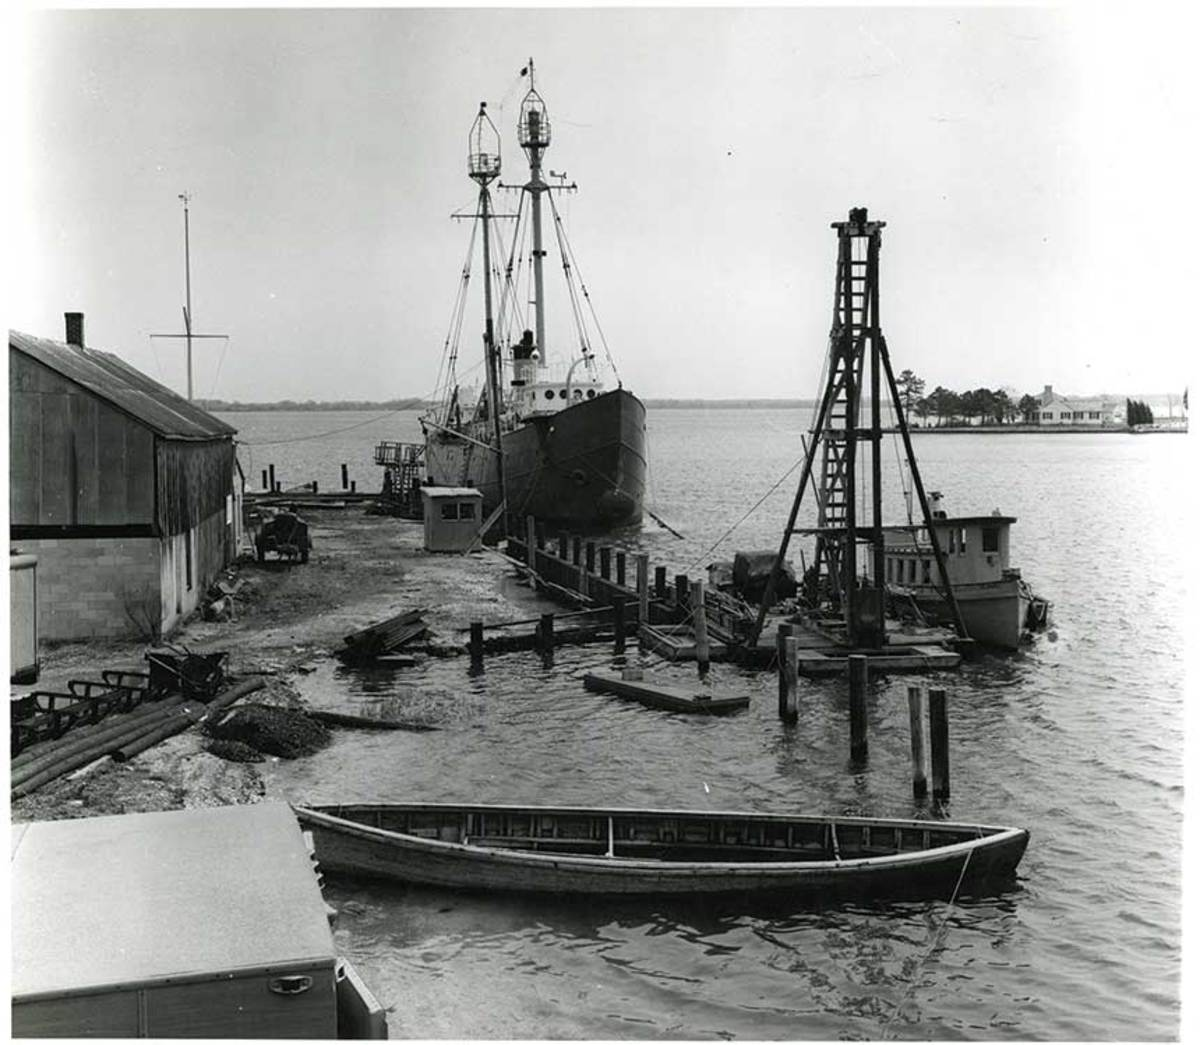 The tug lies at the museum's bulkhead in this photo taken in 1971.